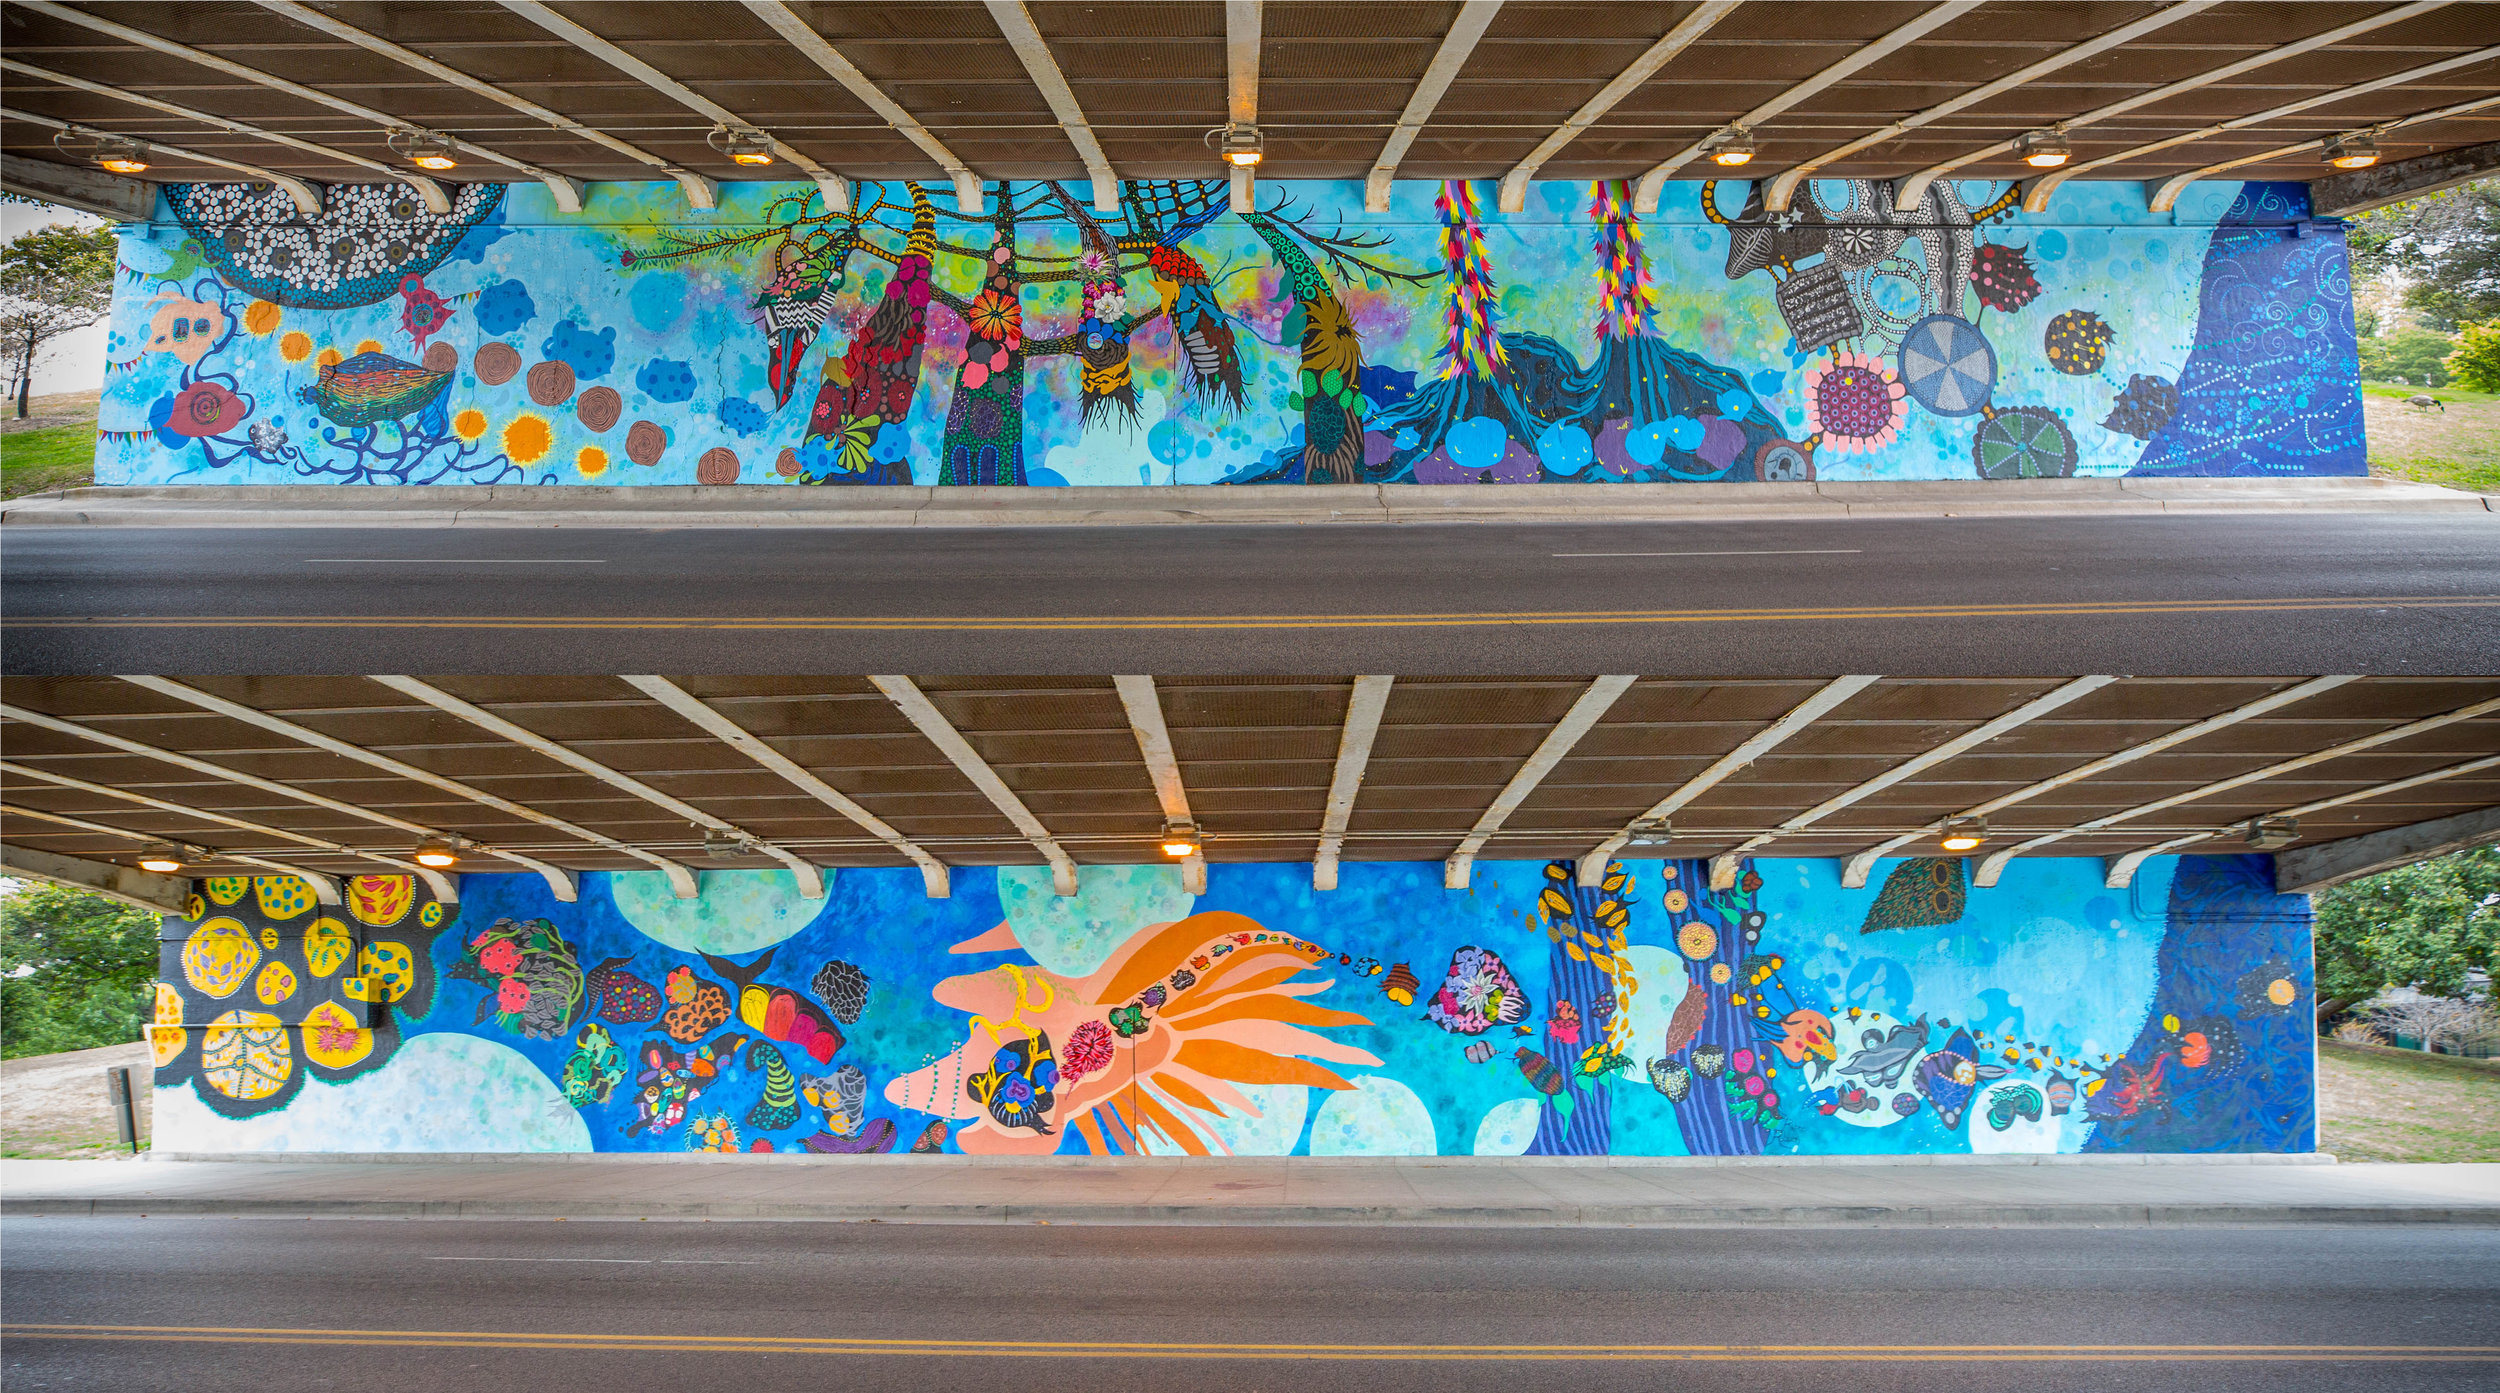 A mural project at the pedestrian underpass at Fullerton and Lake Shore Drive in Chicago, each measuring 14 ft x 110 ft. In partnership with  Chicago Public Art Group  and Fullerton Mural L3C. Photography by Shirley Naninni.